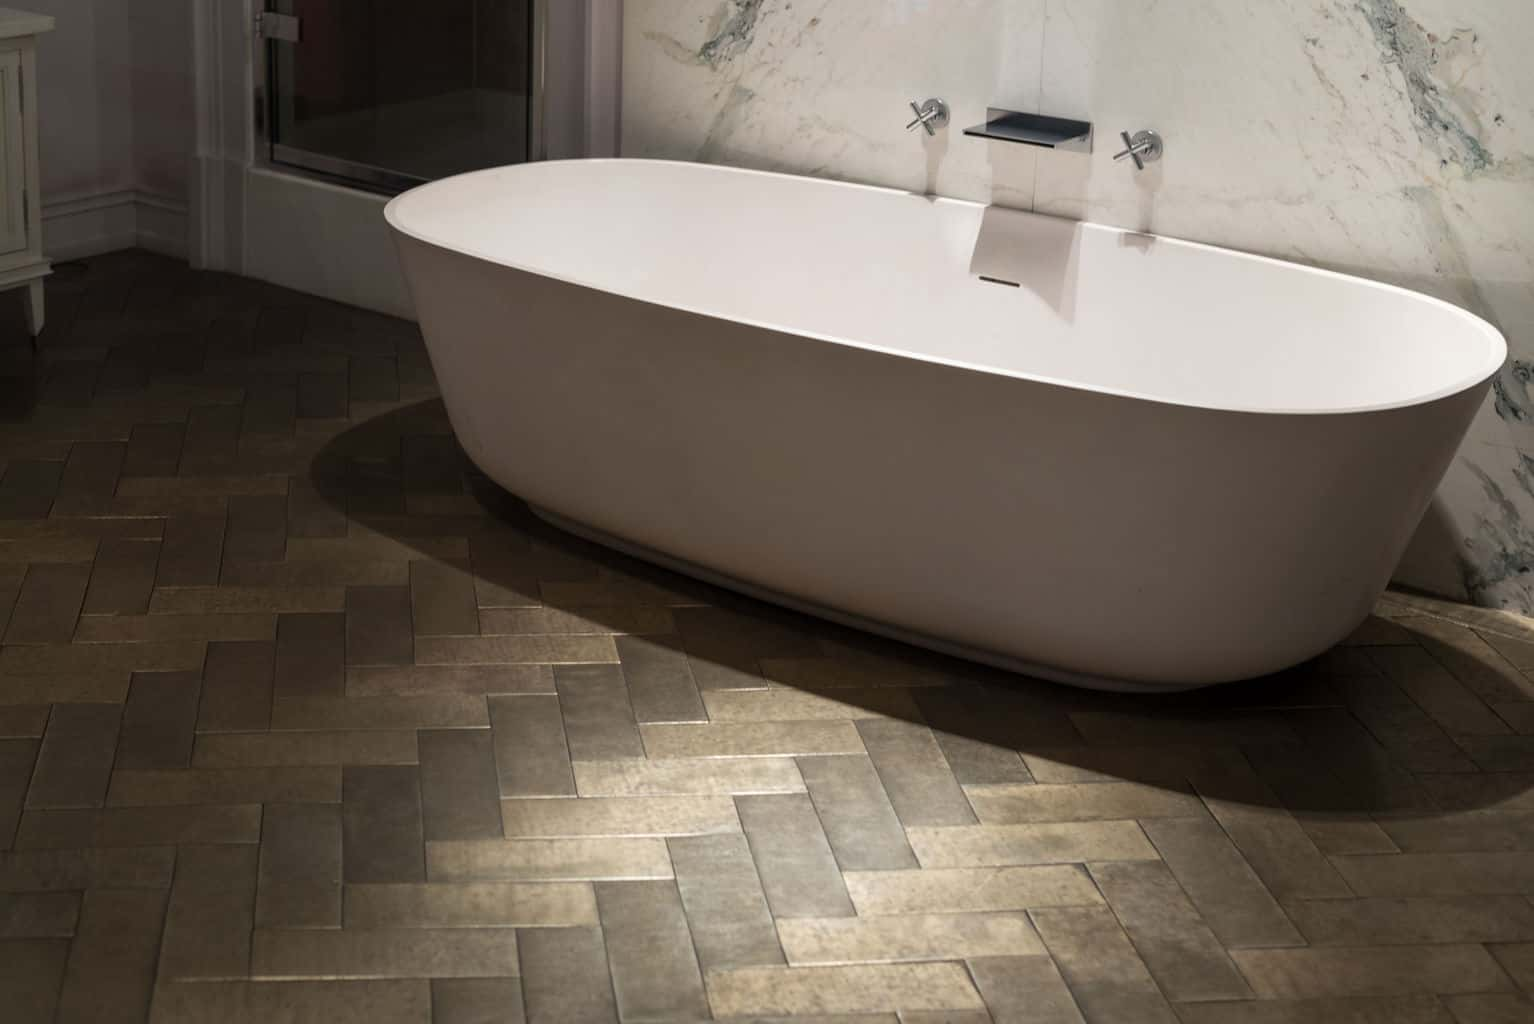 Superb Pros Of Laminate Flooring In Bathroom Applications